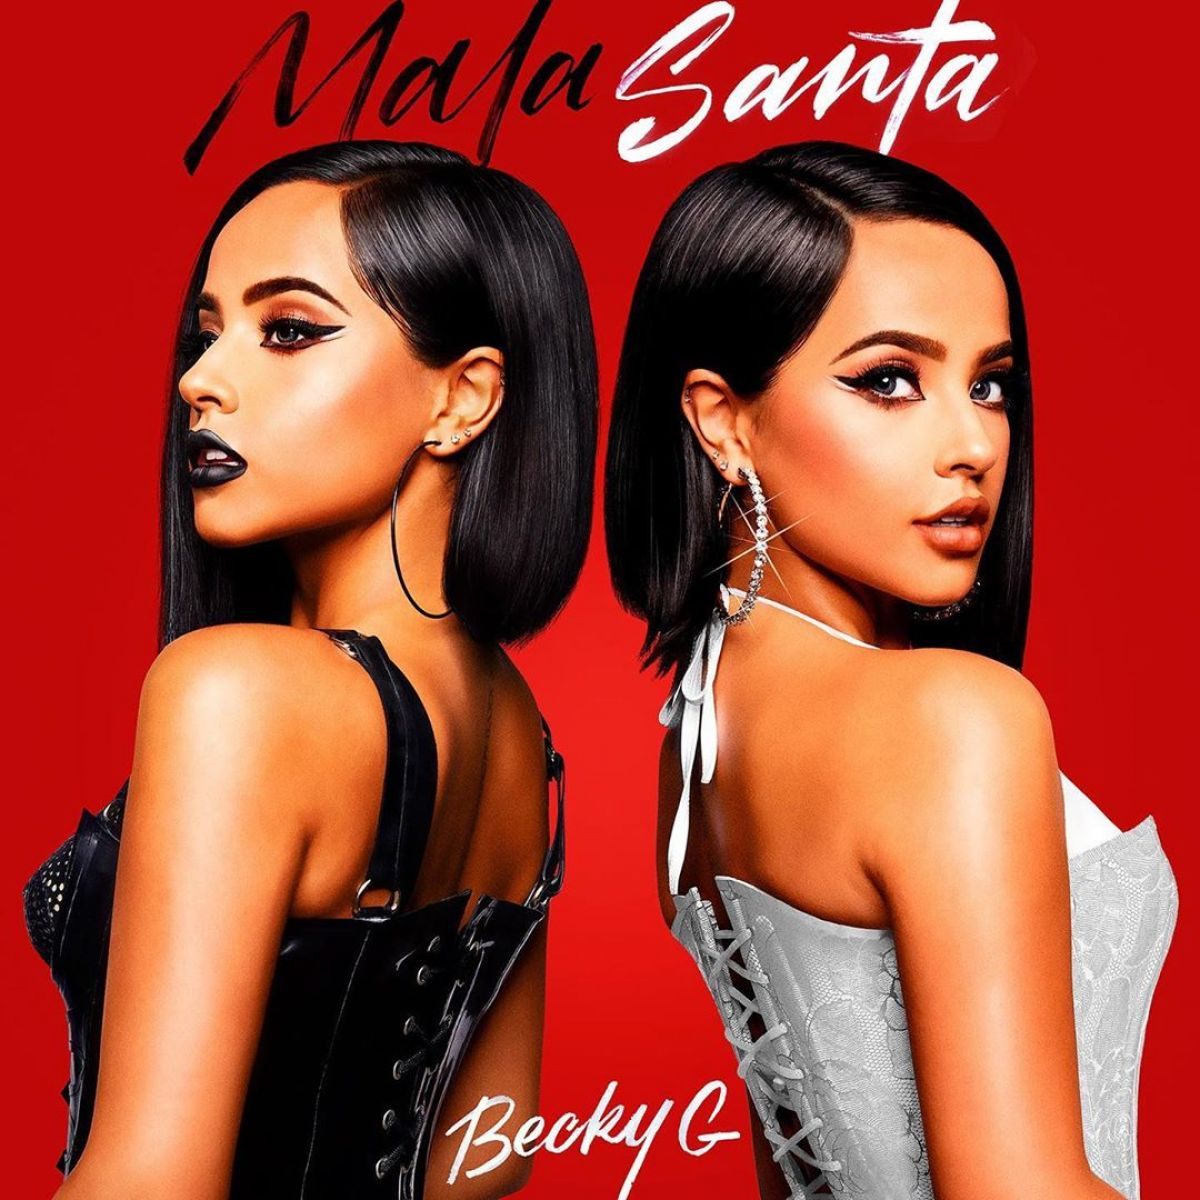 Becky G On The Cover Of Galore Magazine - BootymotionTV